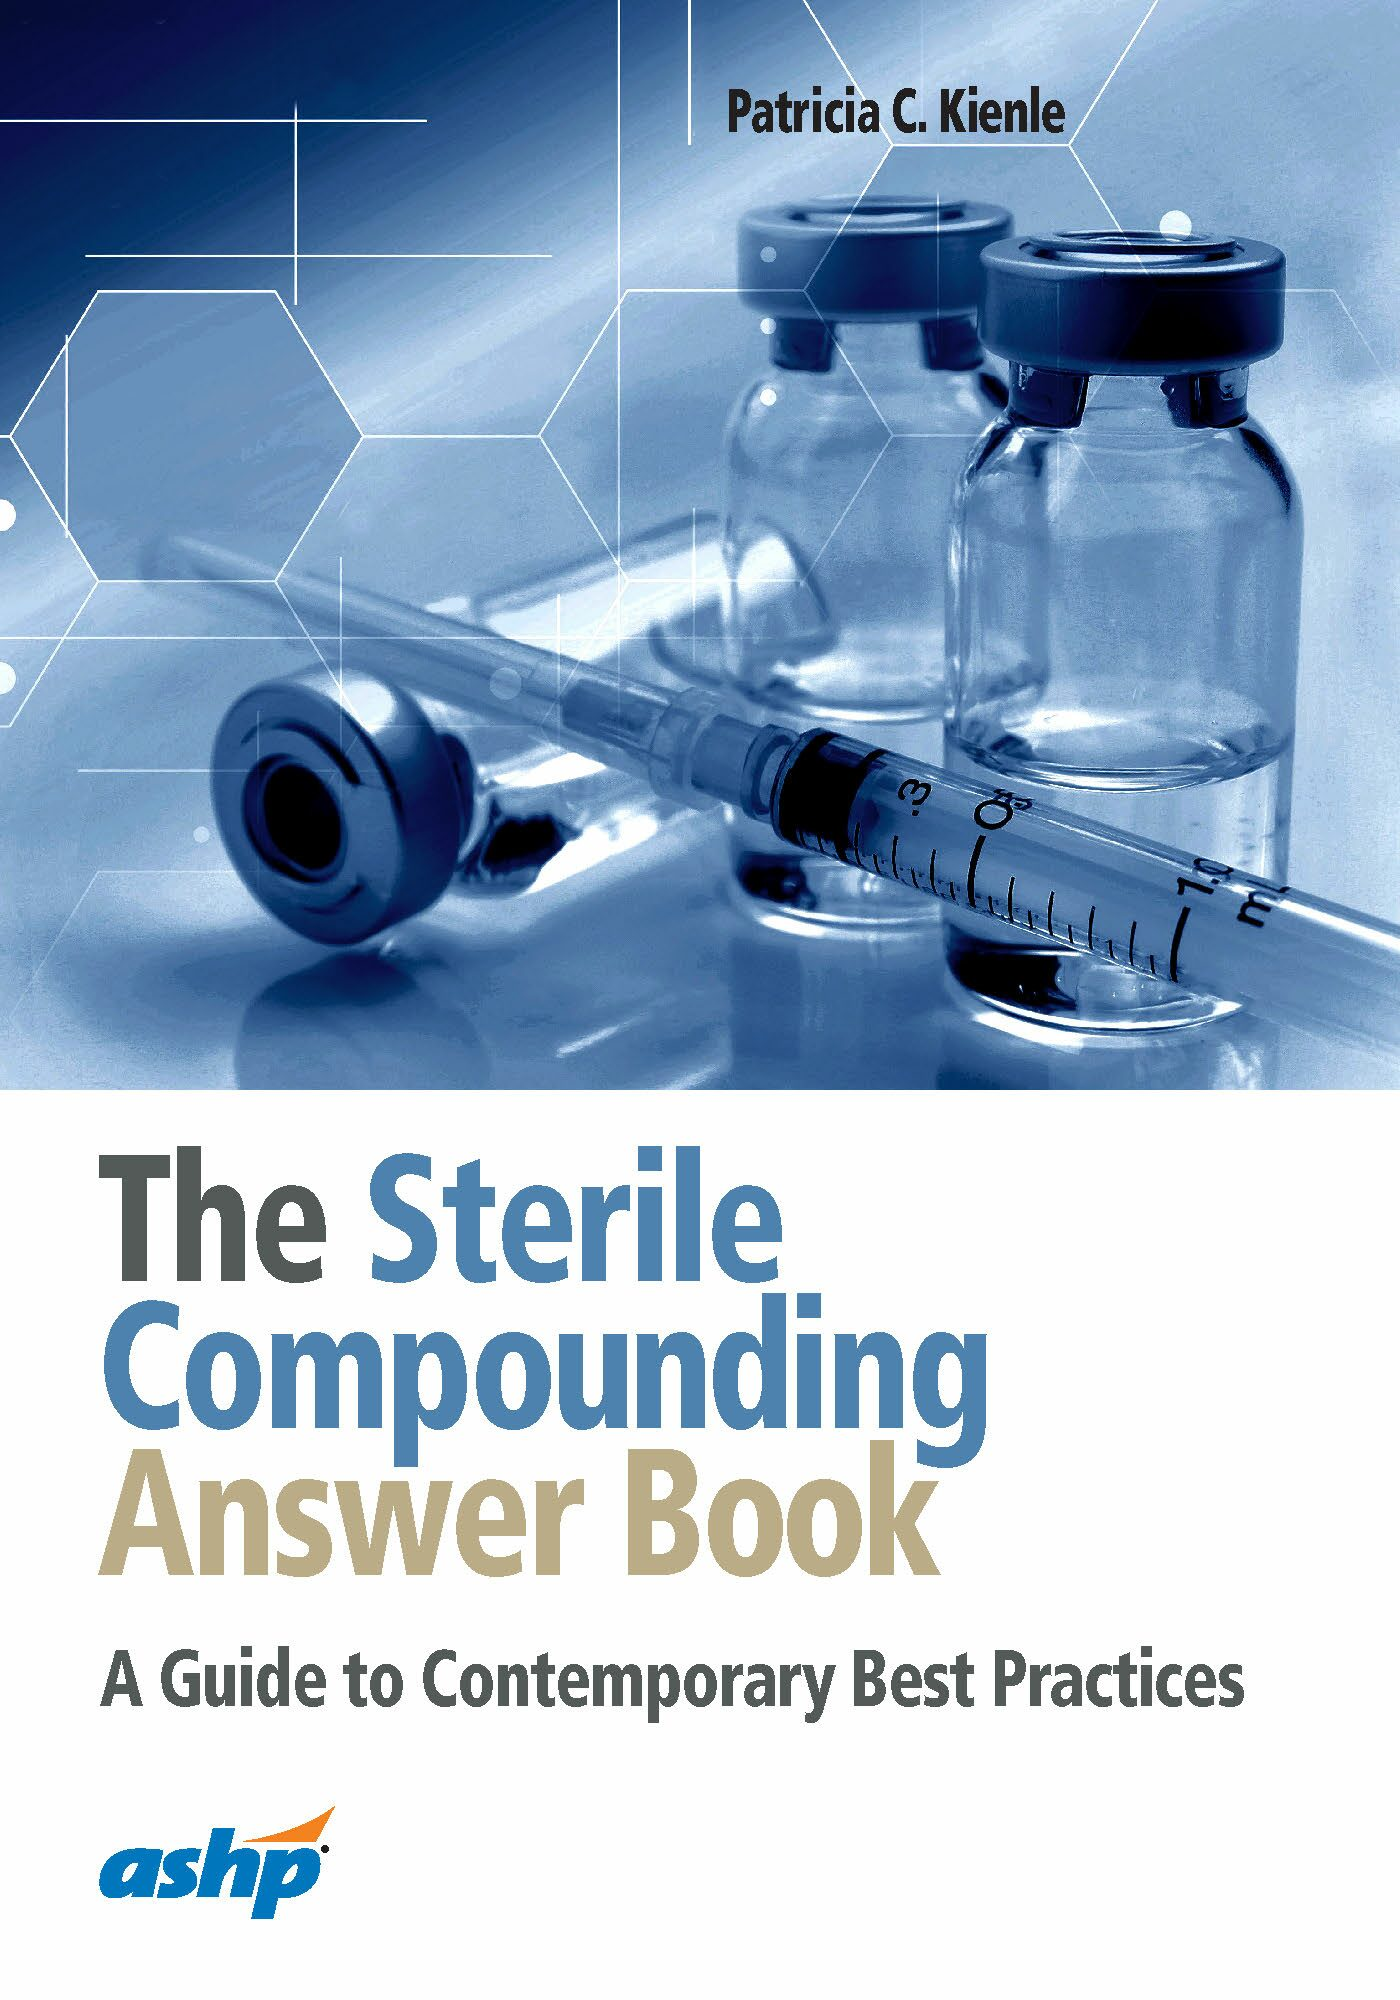 797 sterile personnel compounding a guide pharmacy answers chapter to for general Medication Preparation